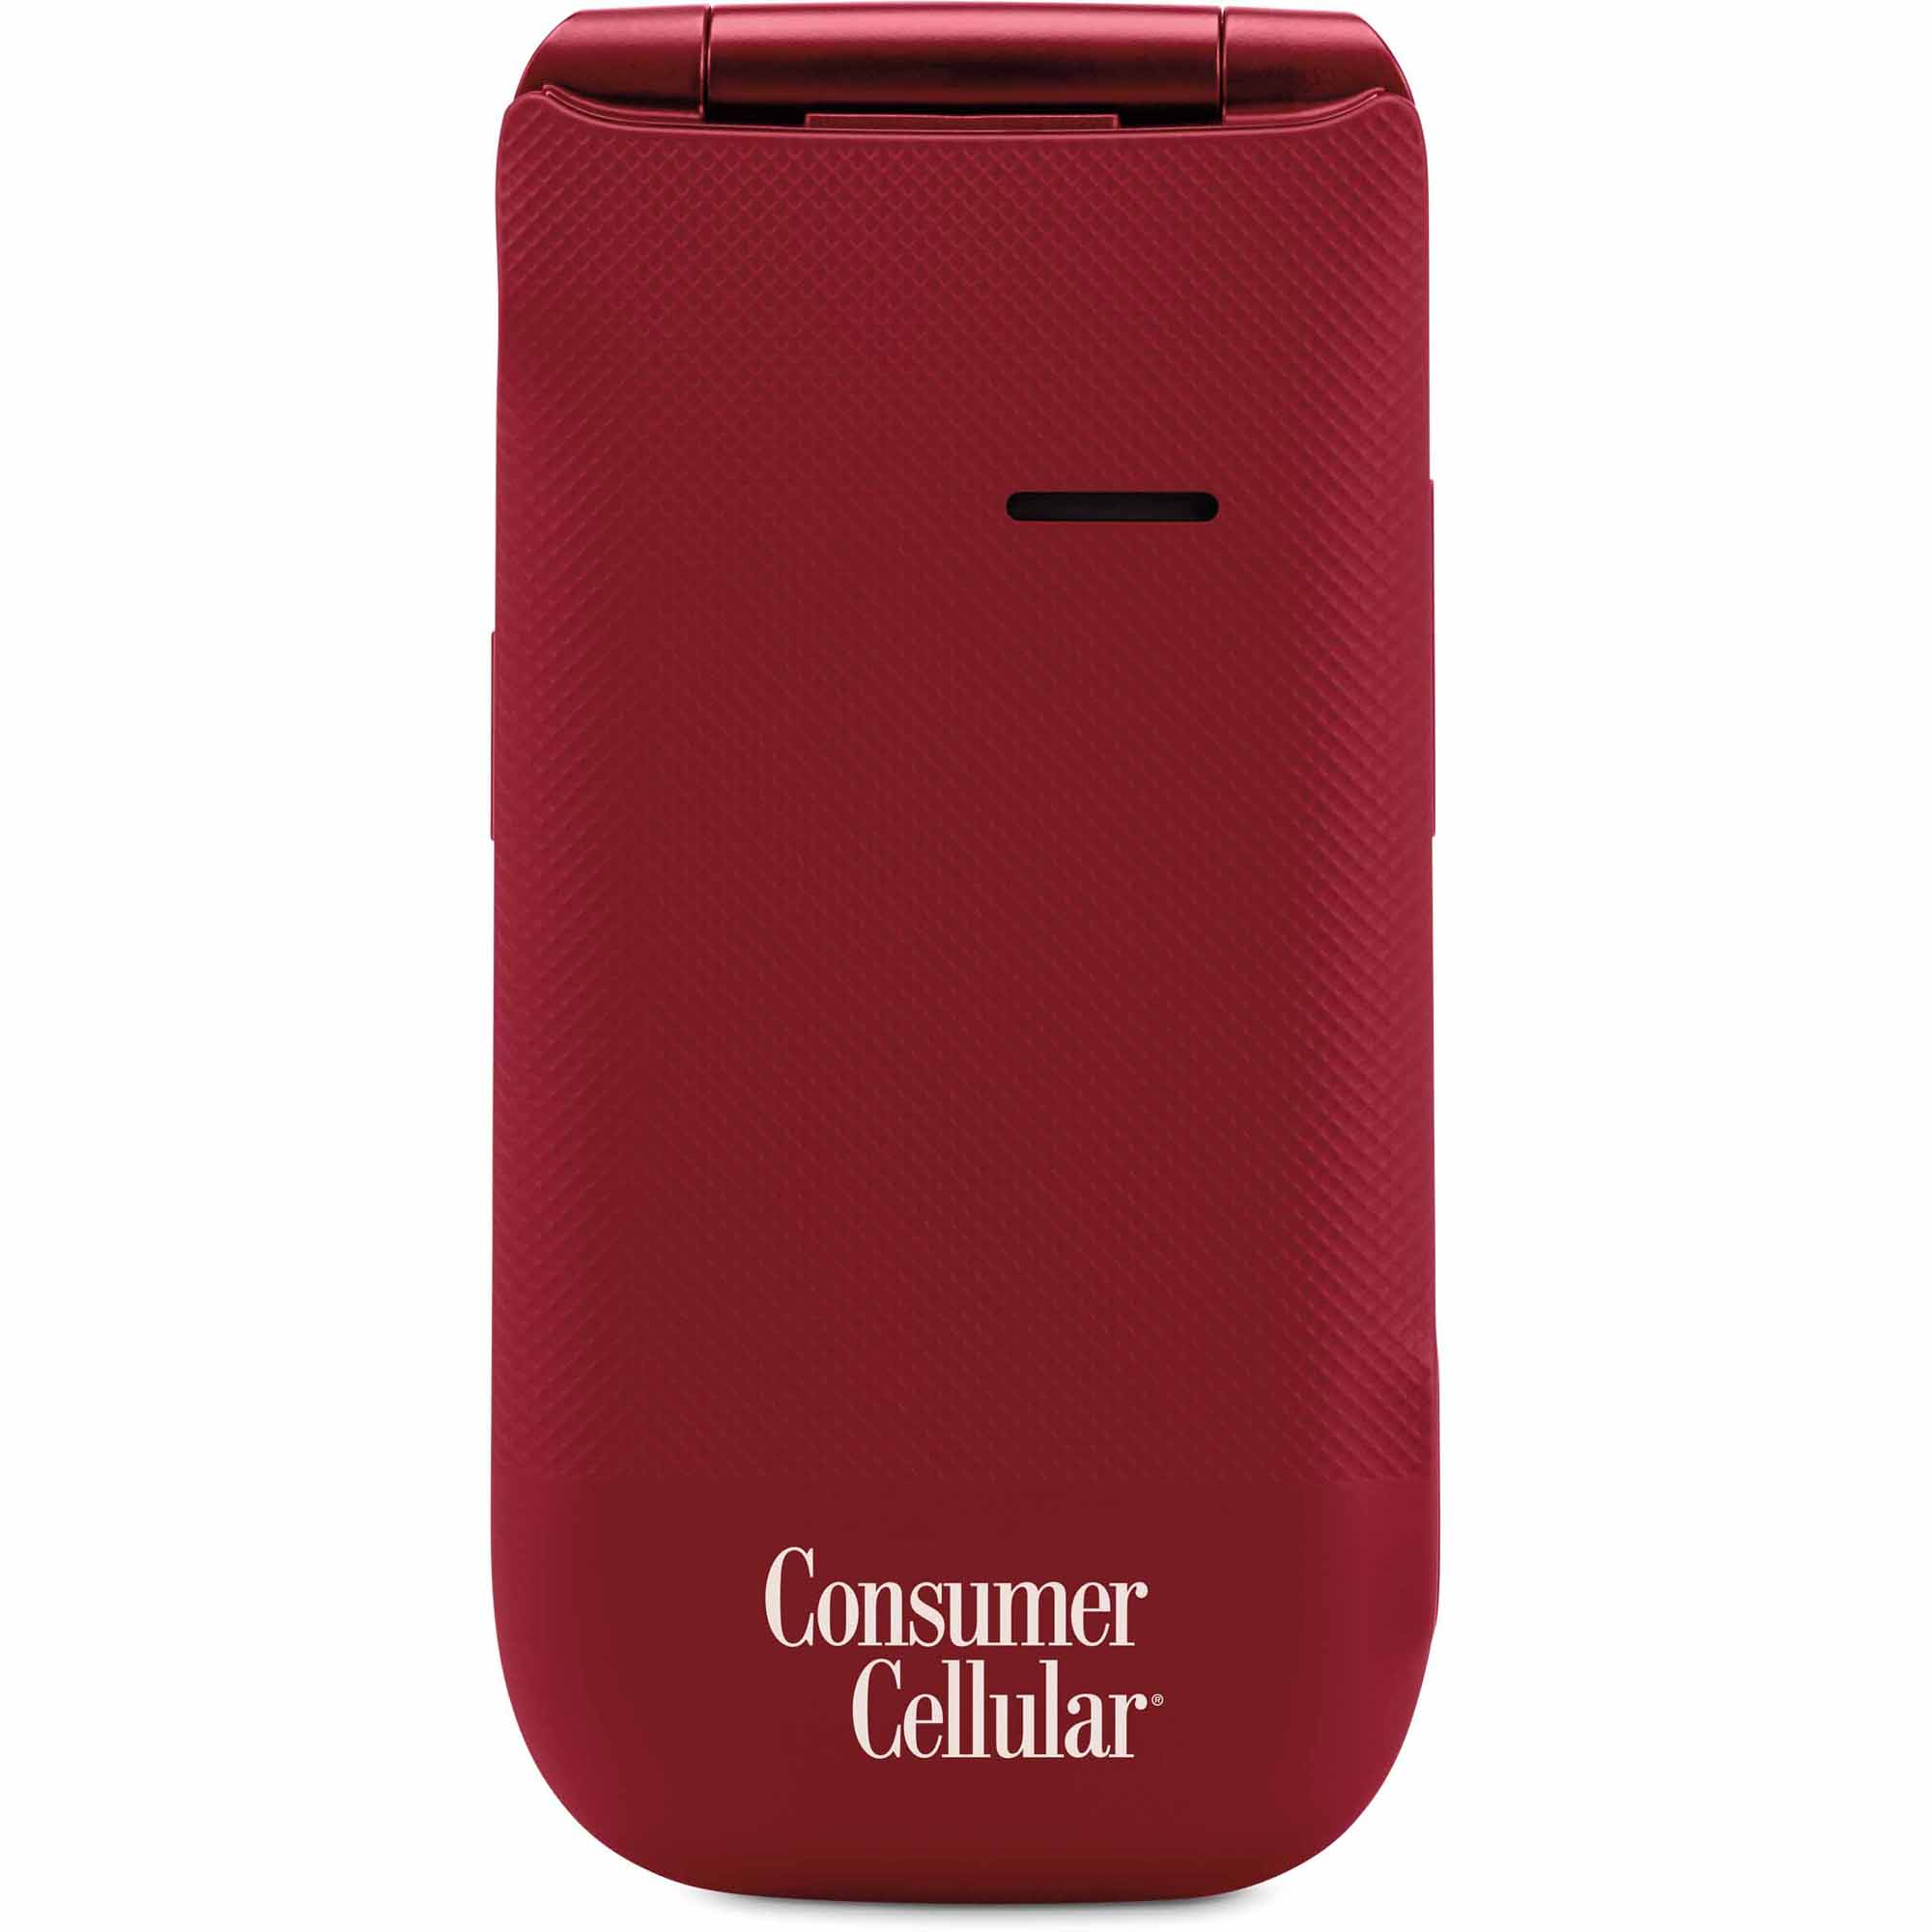 Consumer Cellular 101 Cell Phone - Red